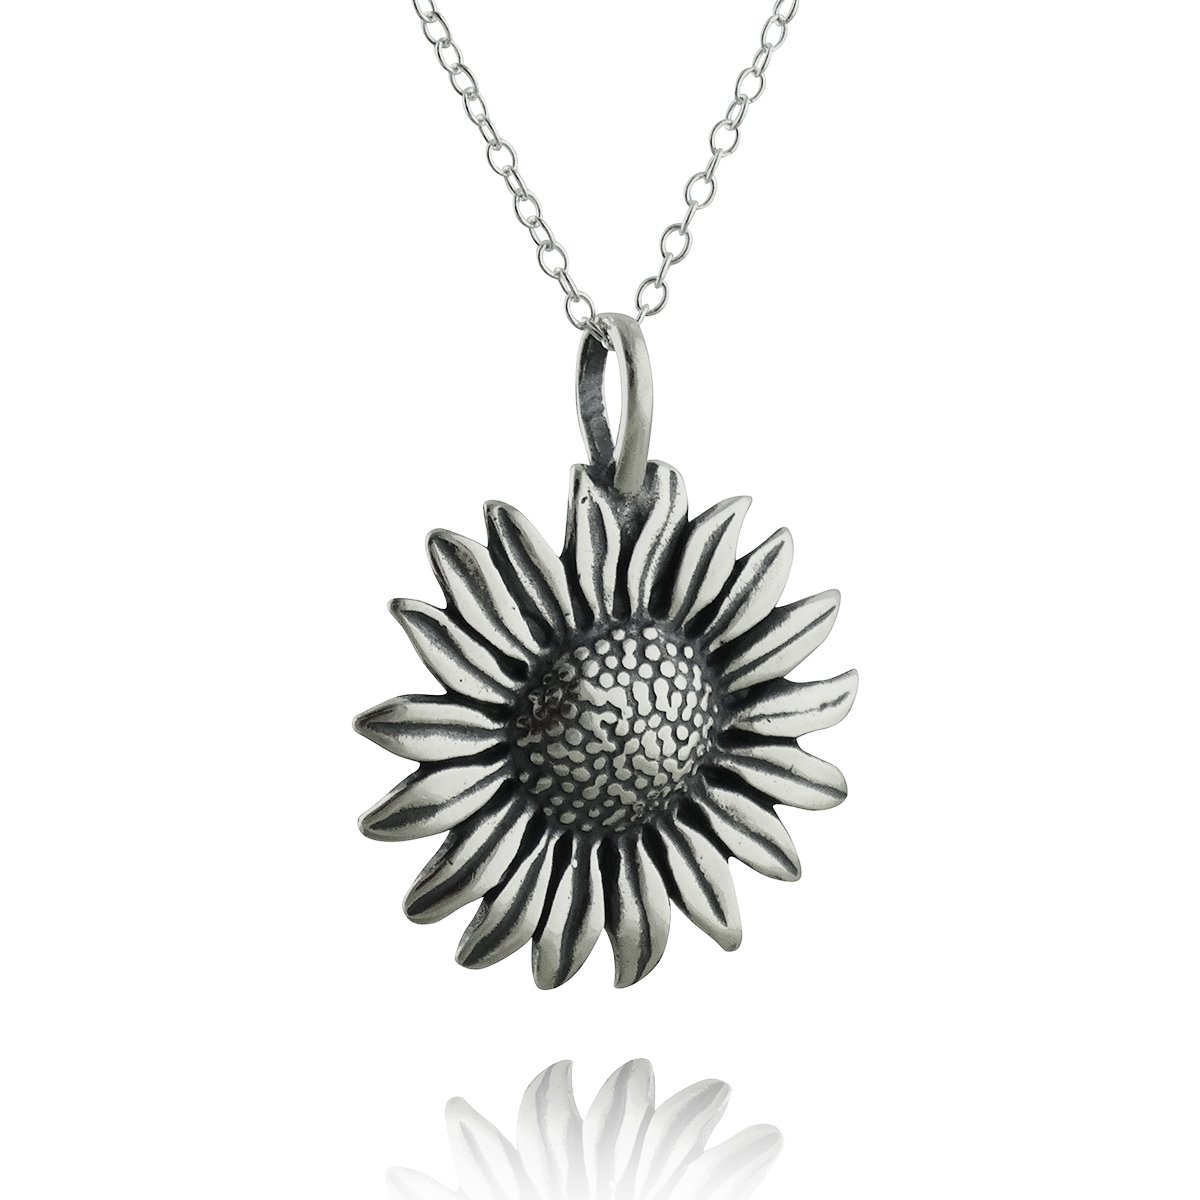 FashionJunkie4Life Sterling Silver Sunflower Pendant Necklace, 18'' Cable Chain